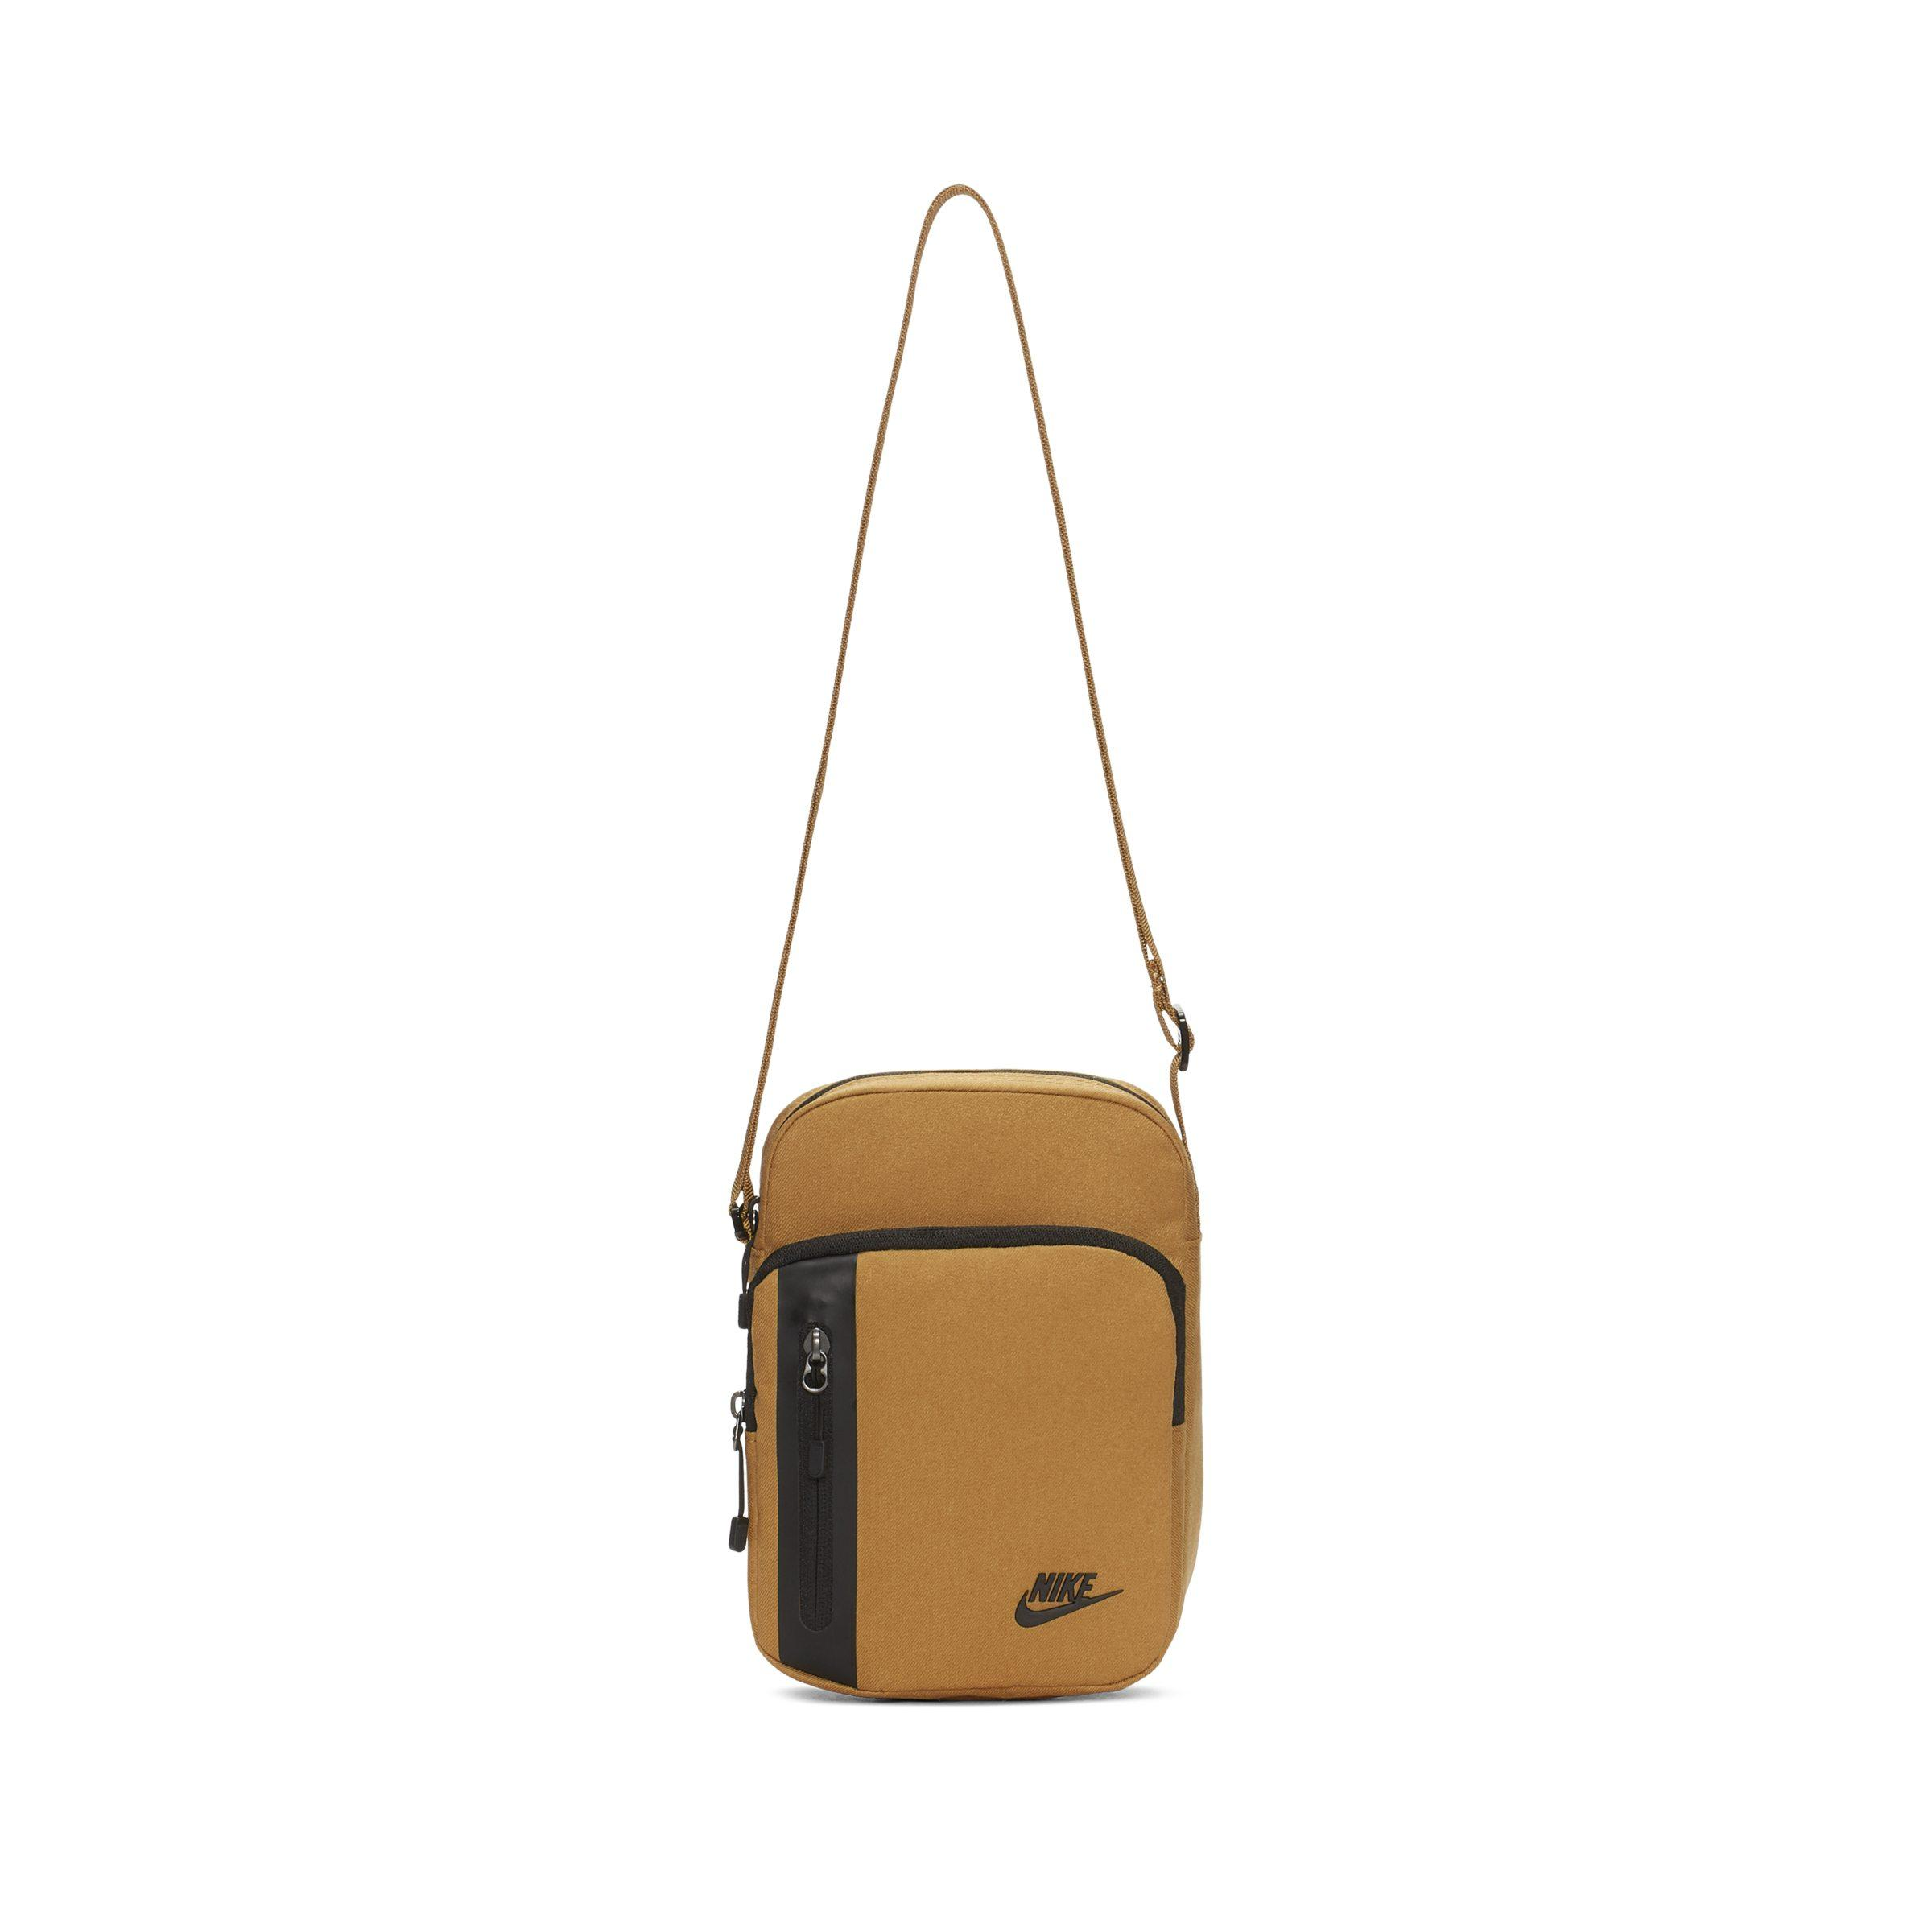 73395754dabc Nike Core Small Items 3.0 Bag in Brown - Lyst